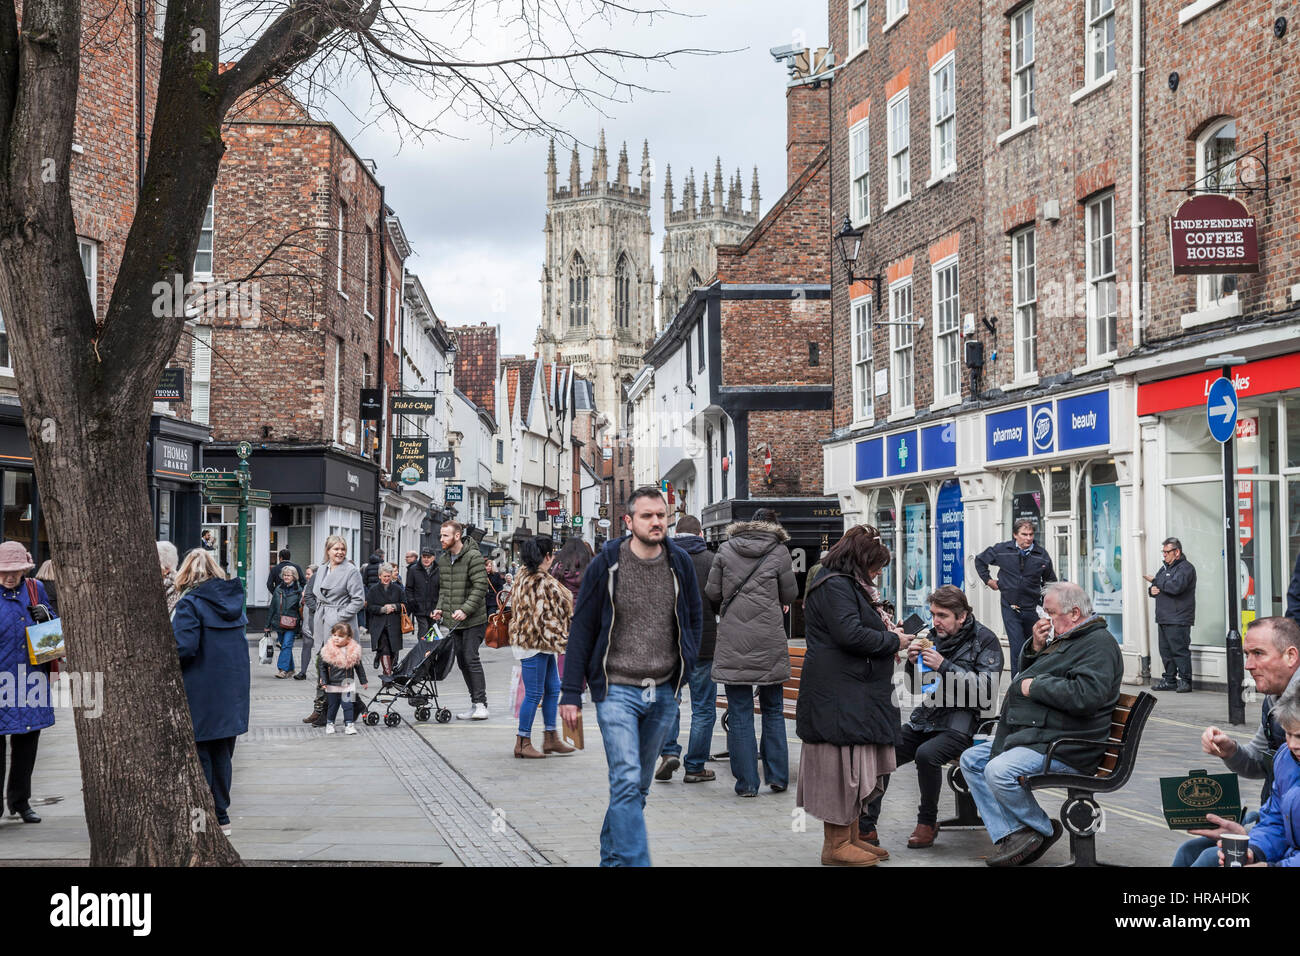 A view of the busy Low Petergate in York city center with the Minster in background - Stock Image